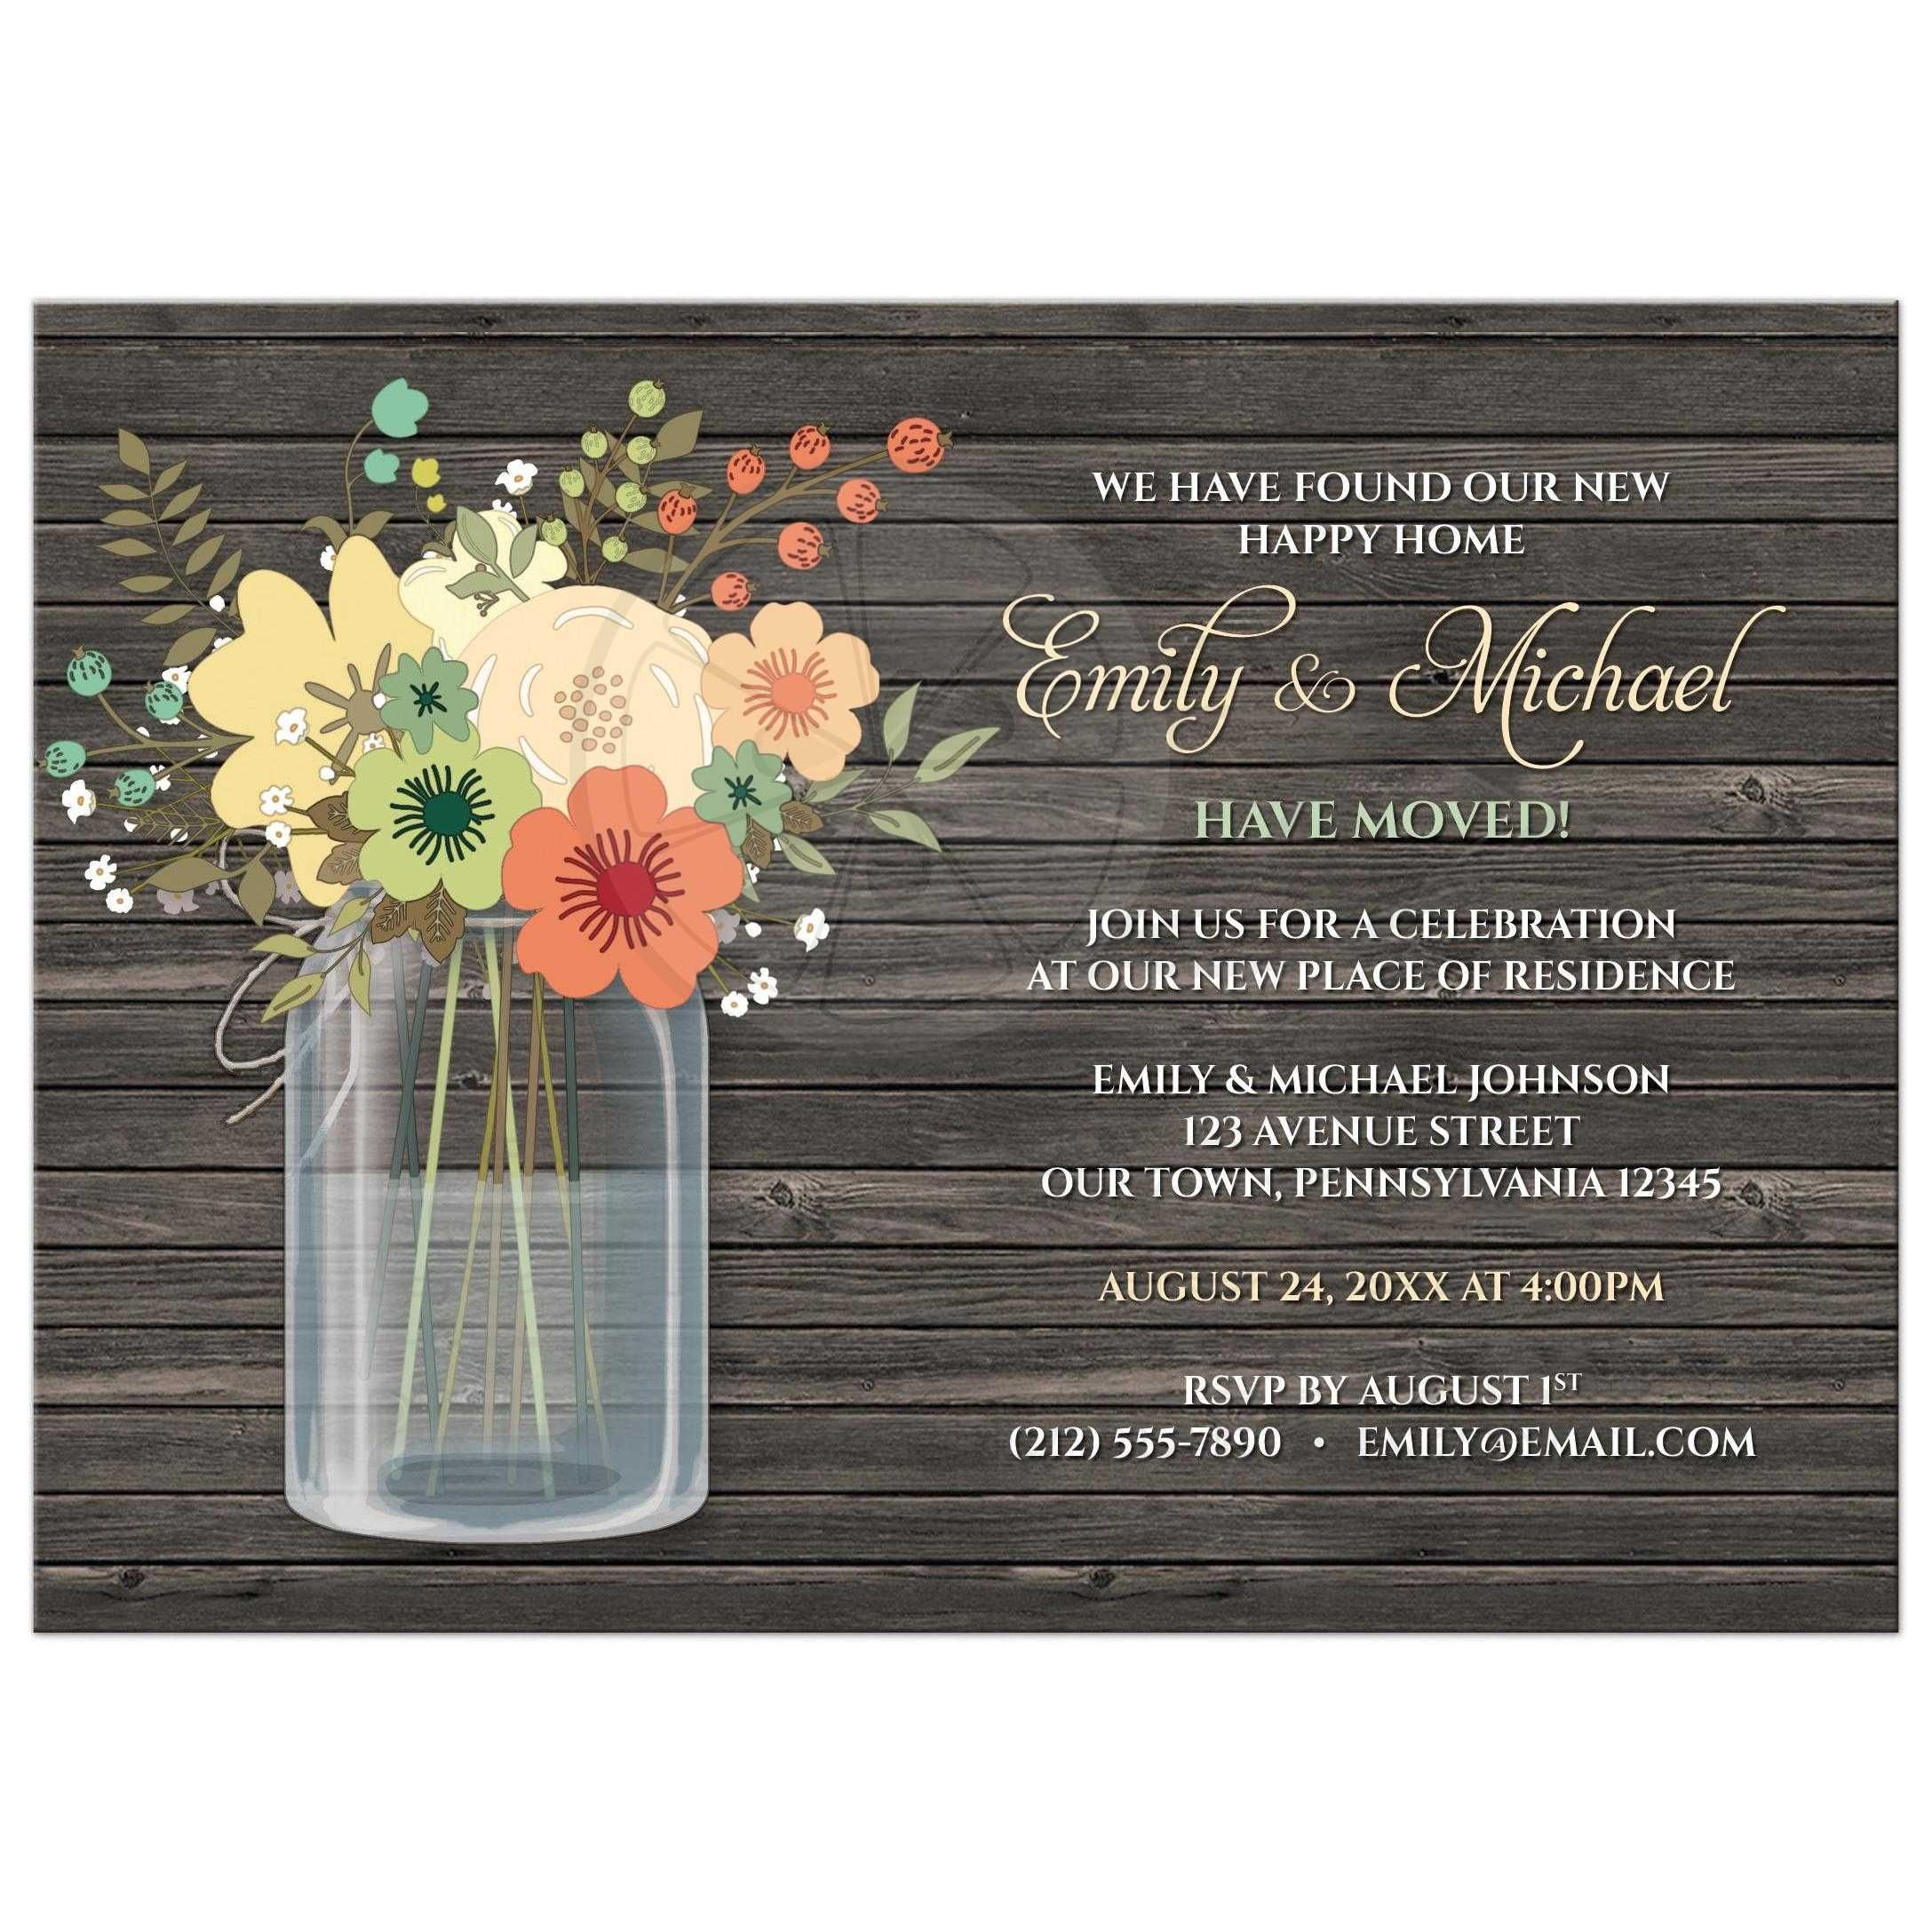 Housewarming Invitations  Rustic Floral Wood Mason Jar